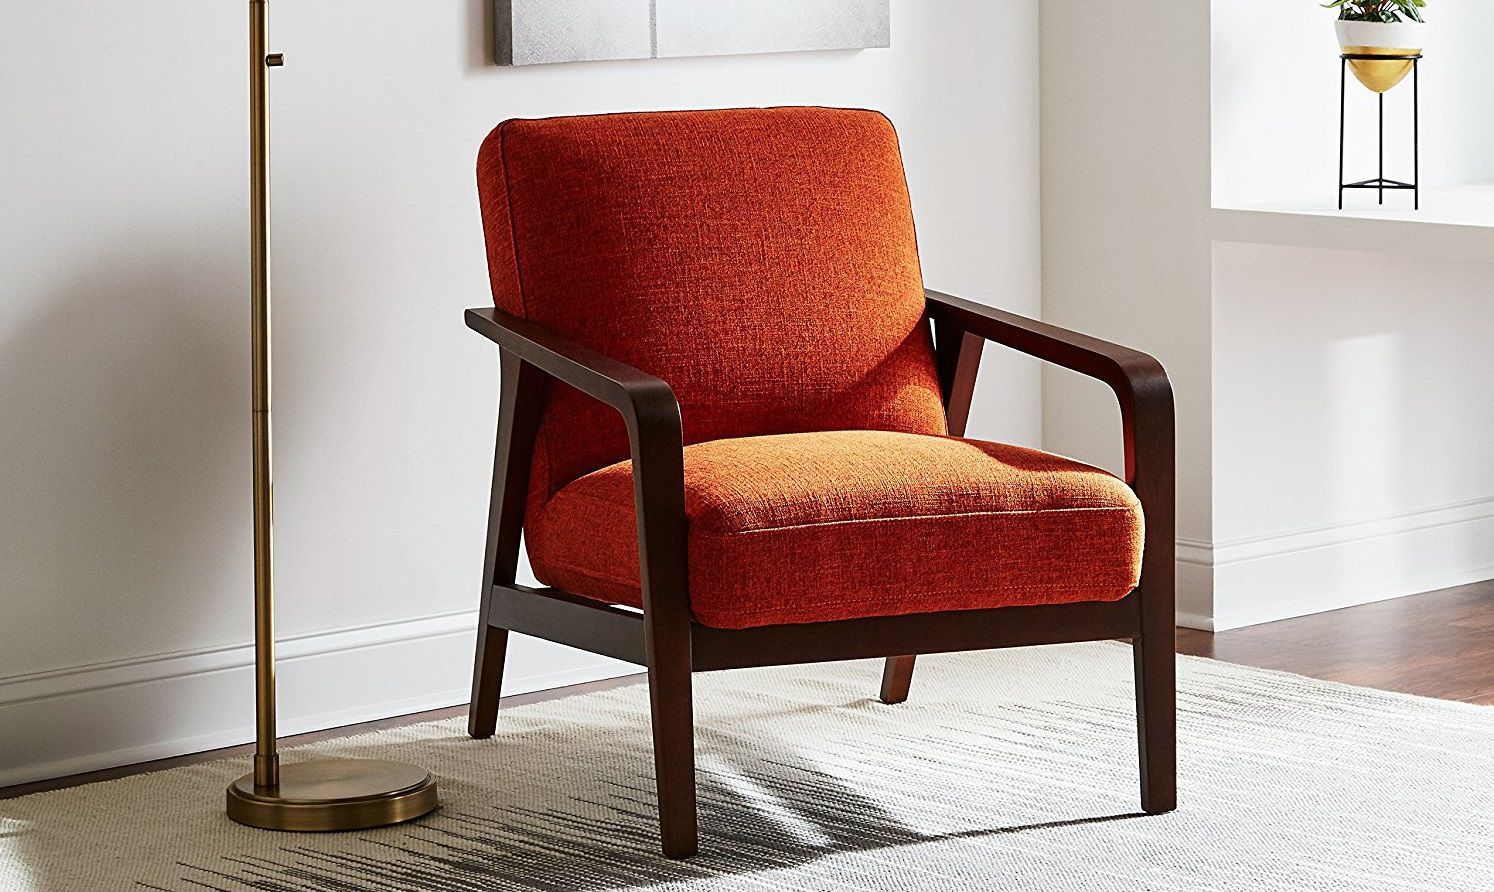 4 Sleek Accent Chairs For Mid Century Modern Living Rooms